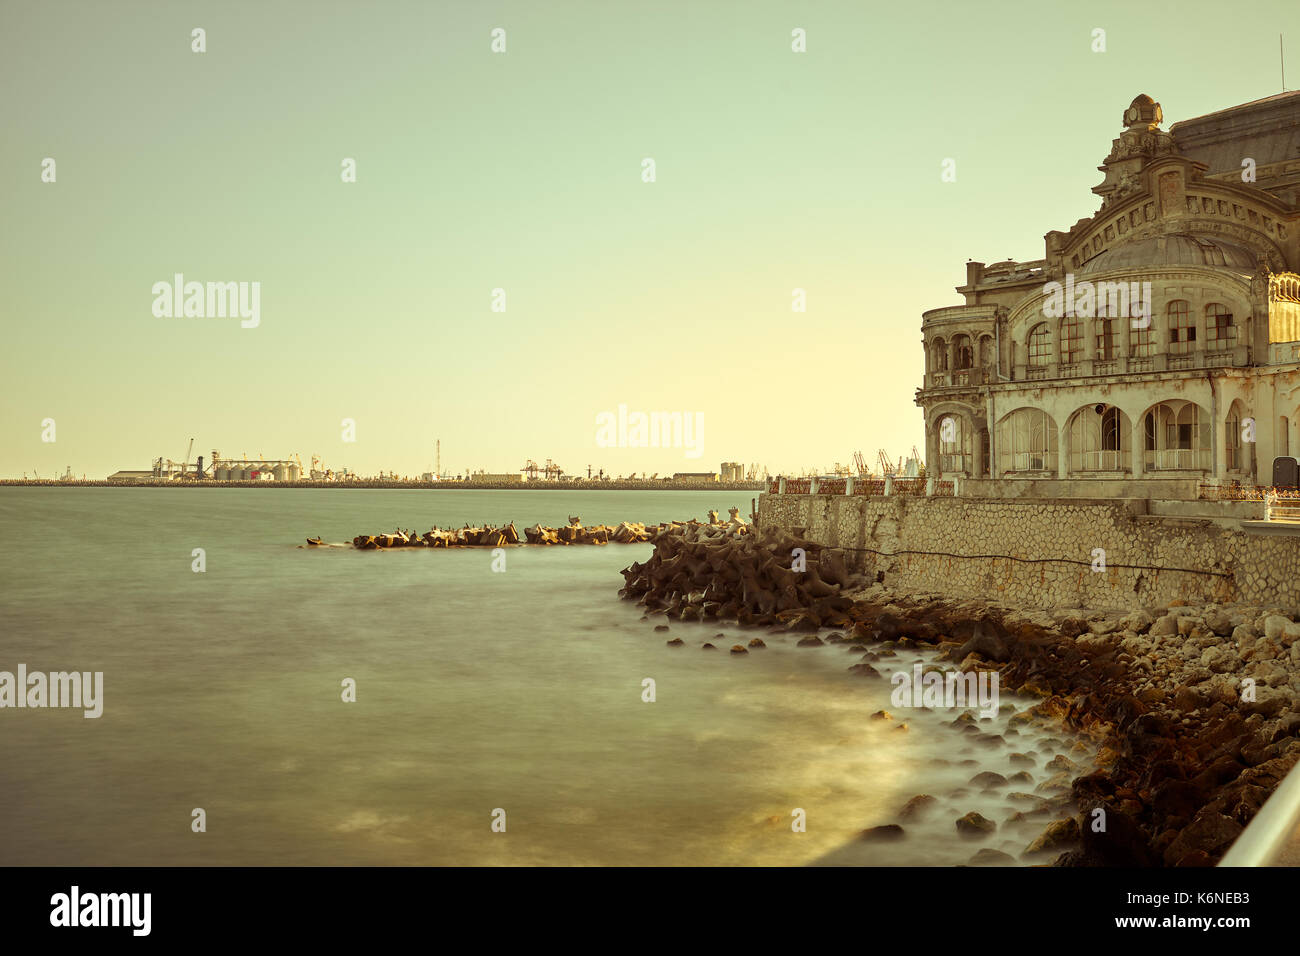 The Black Sea at sunset, seafront Constanta, Romania. - Stock Image